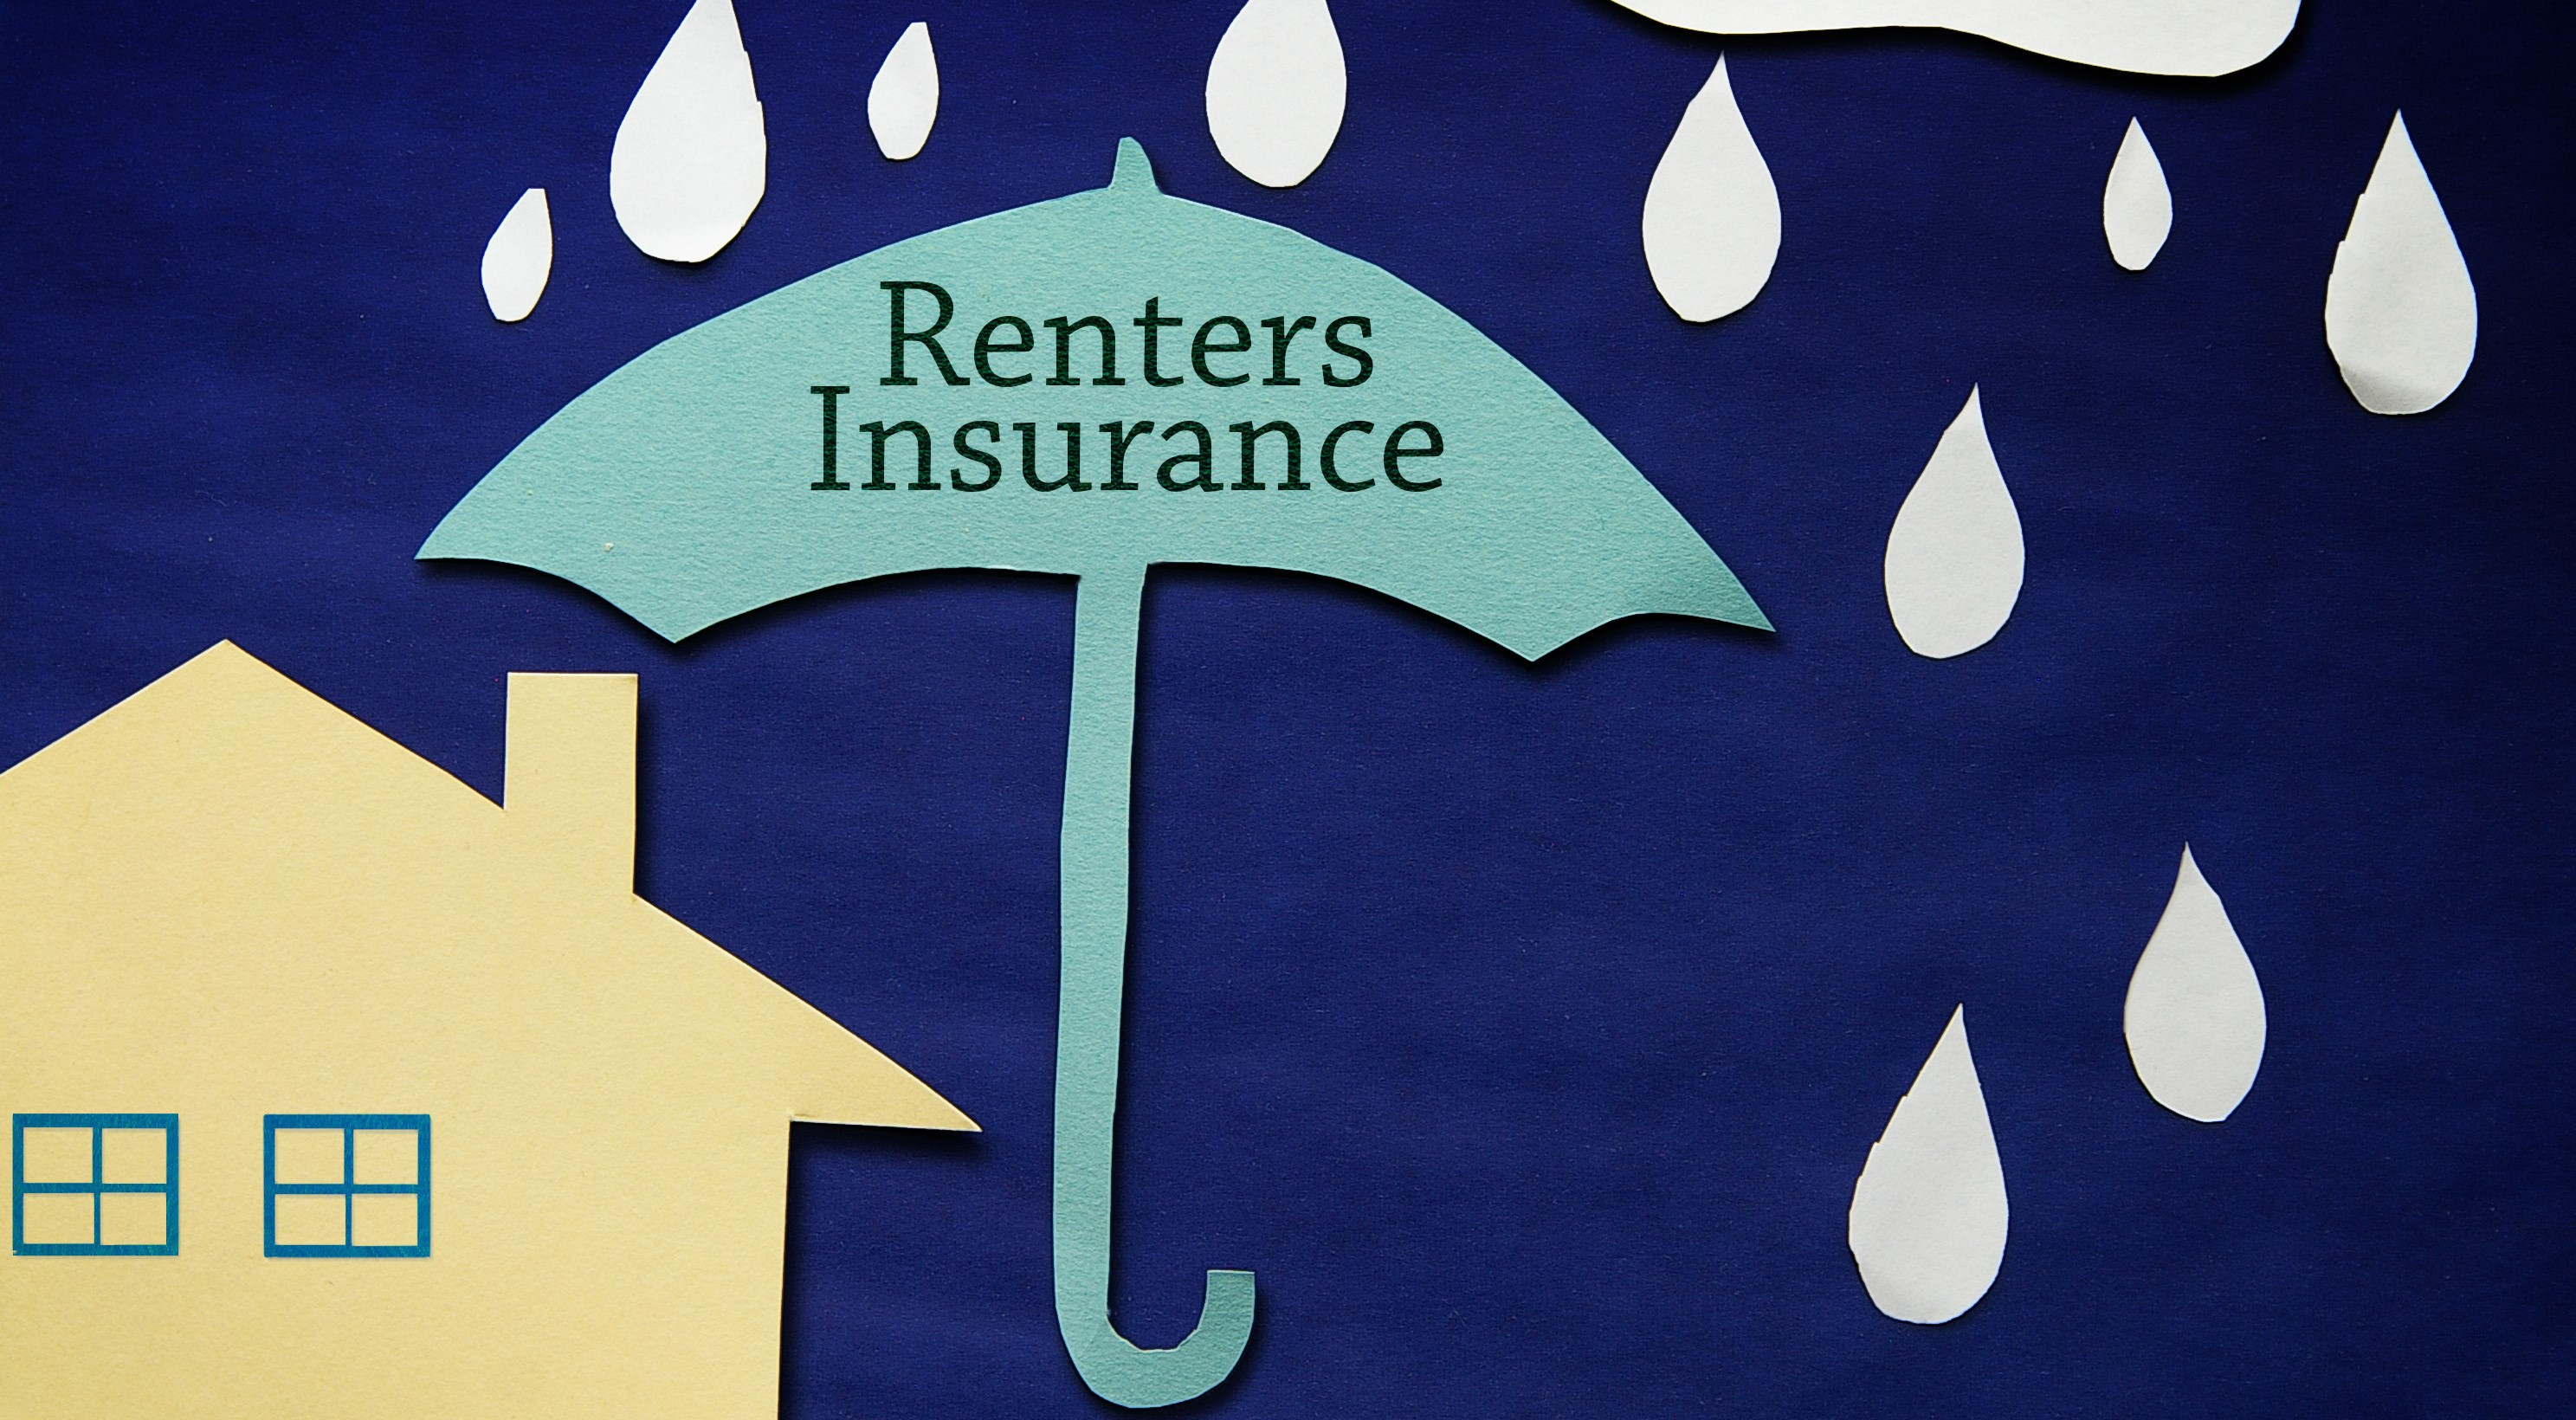 NH renters insurance